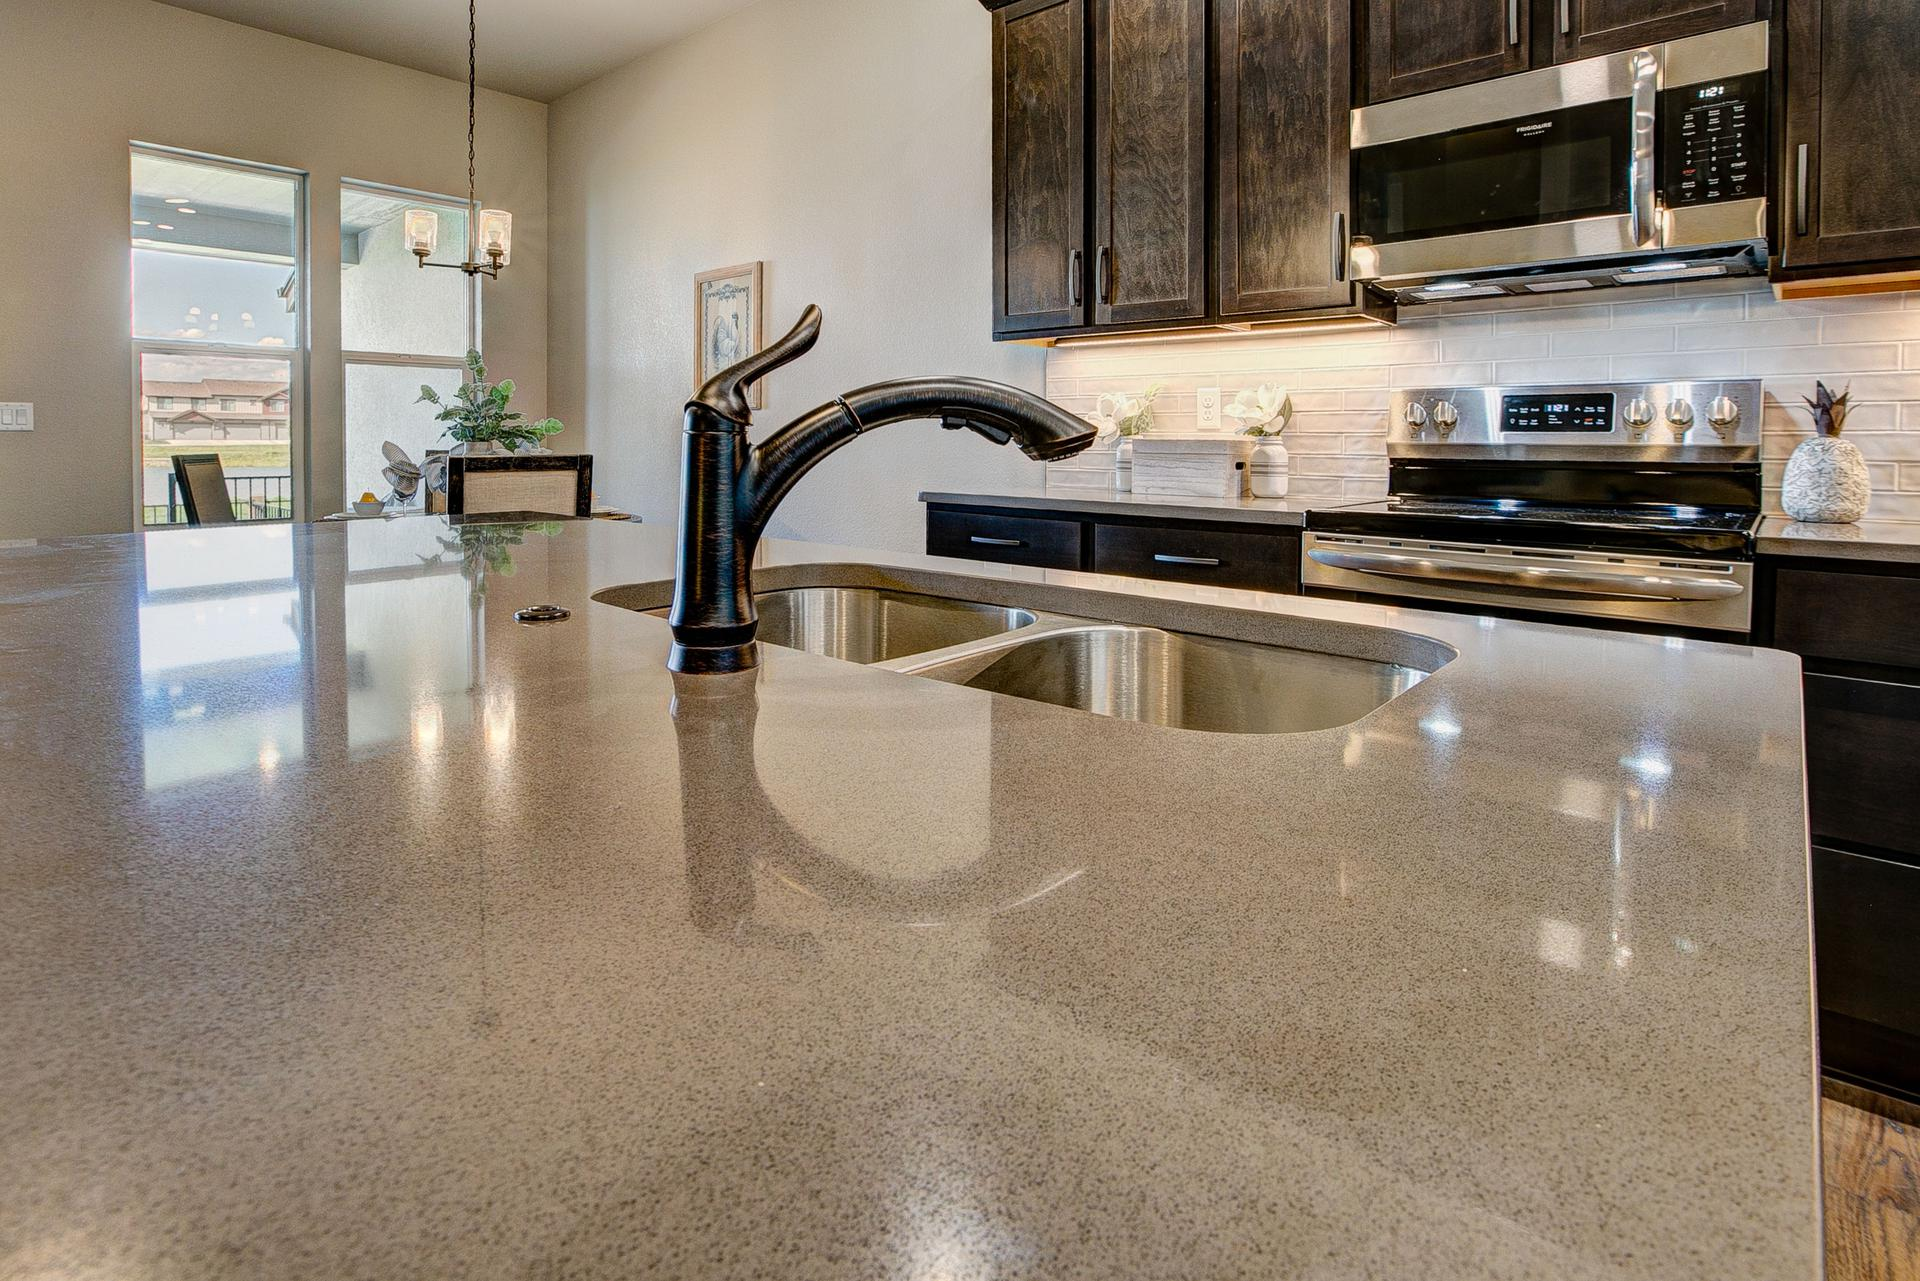 Kitchen - Not Actual Home - Finishes Will Vary . 6242 Vernazza Way #2, Windsor, CO